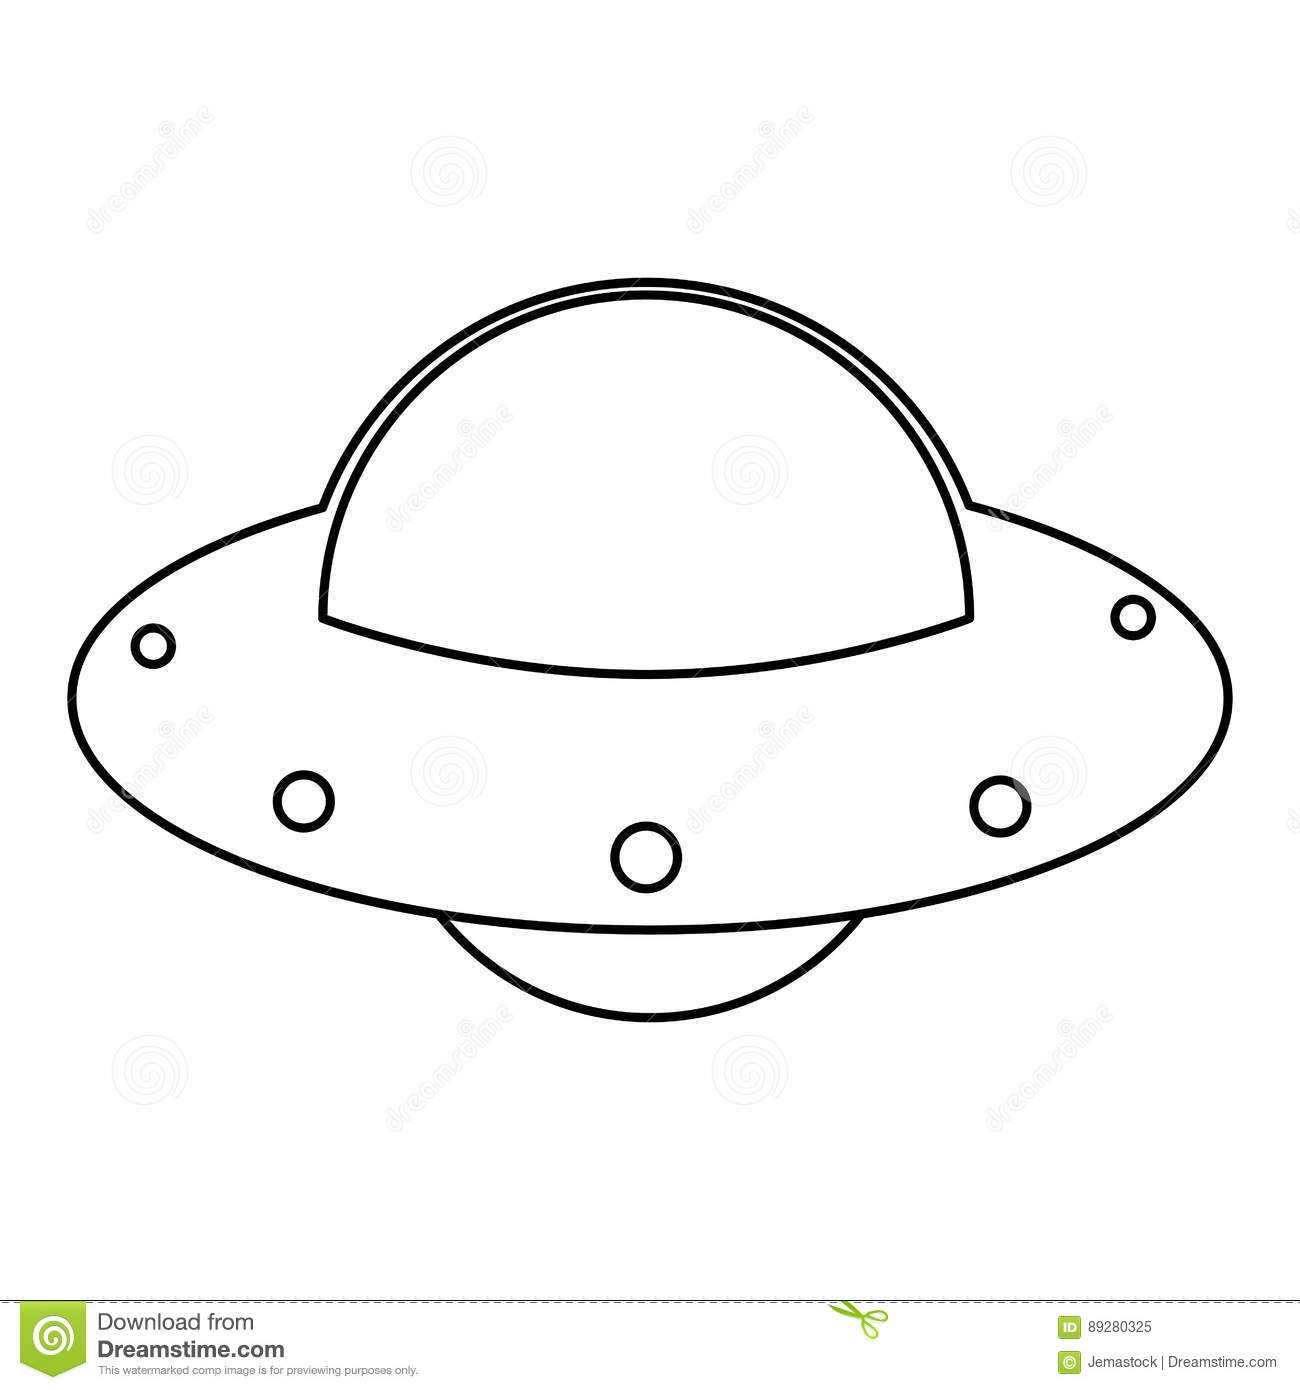 Ufo Spaceship Fly Image Outline Stock Illustration